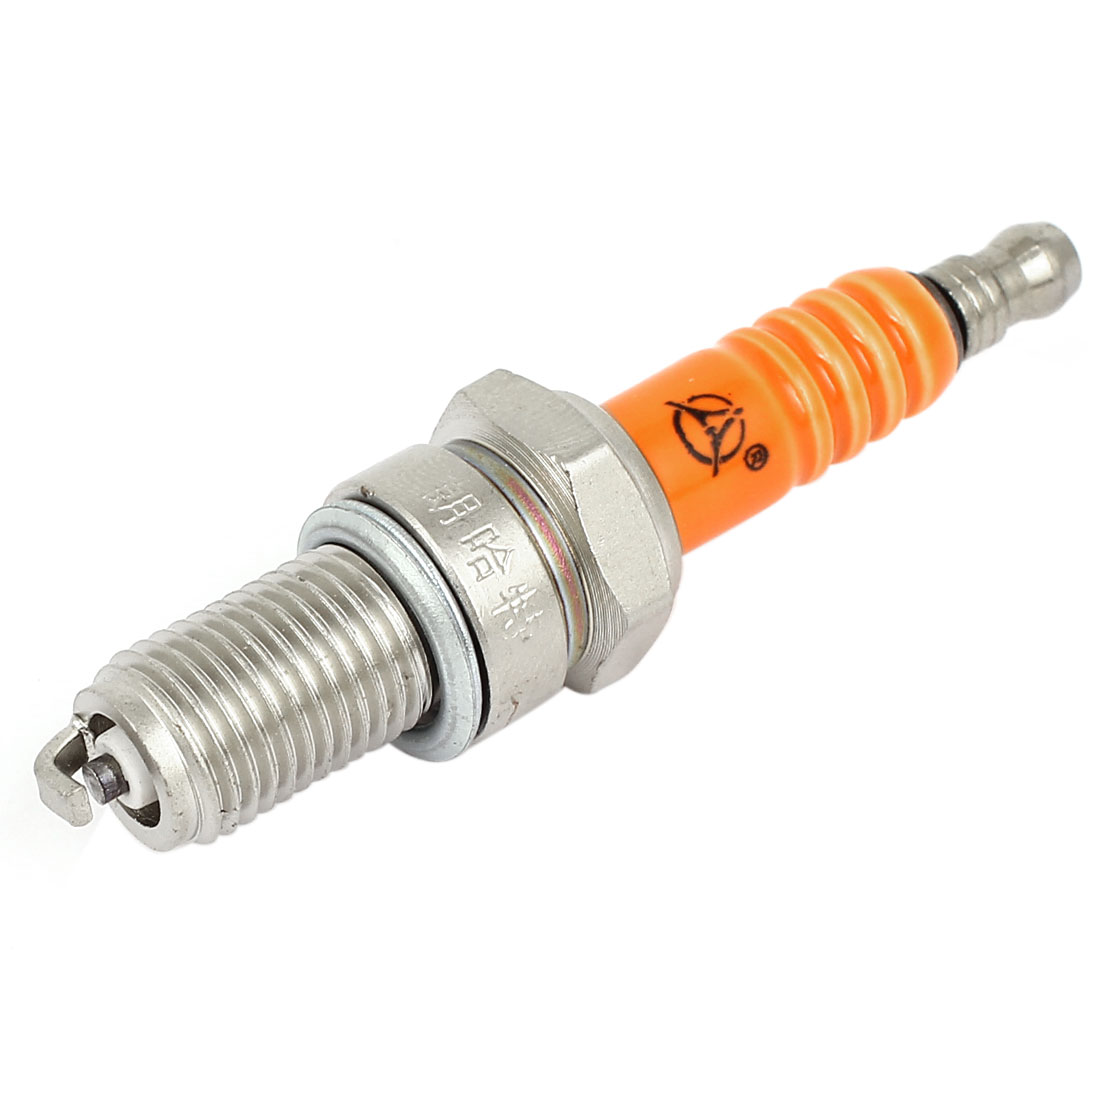 D8TC Orangered Spark Plug for Mens Motocycle